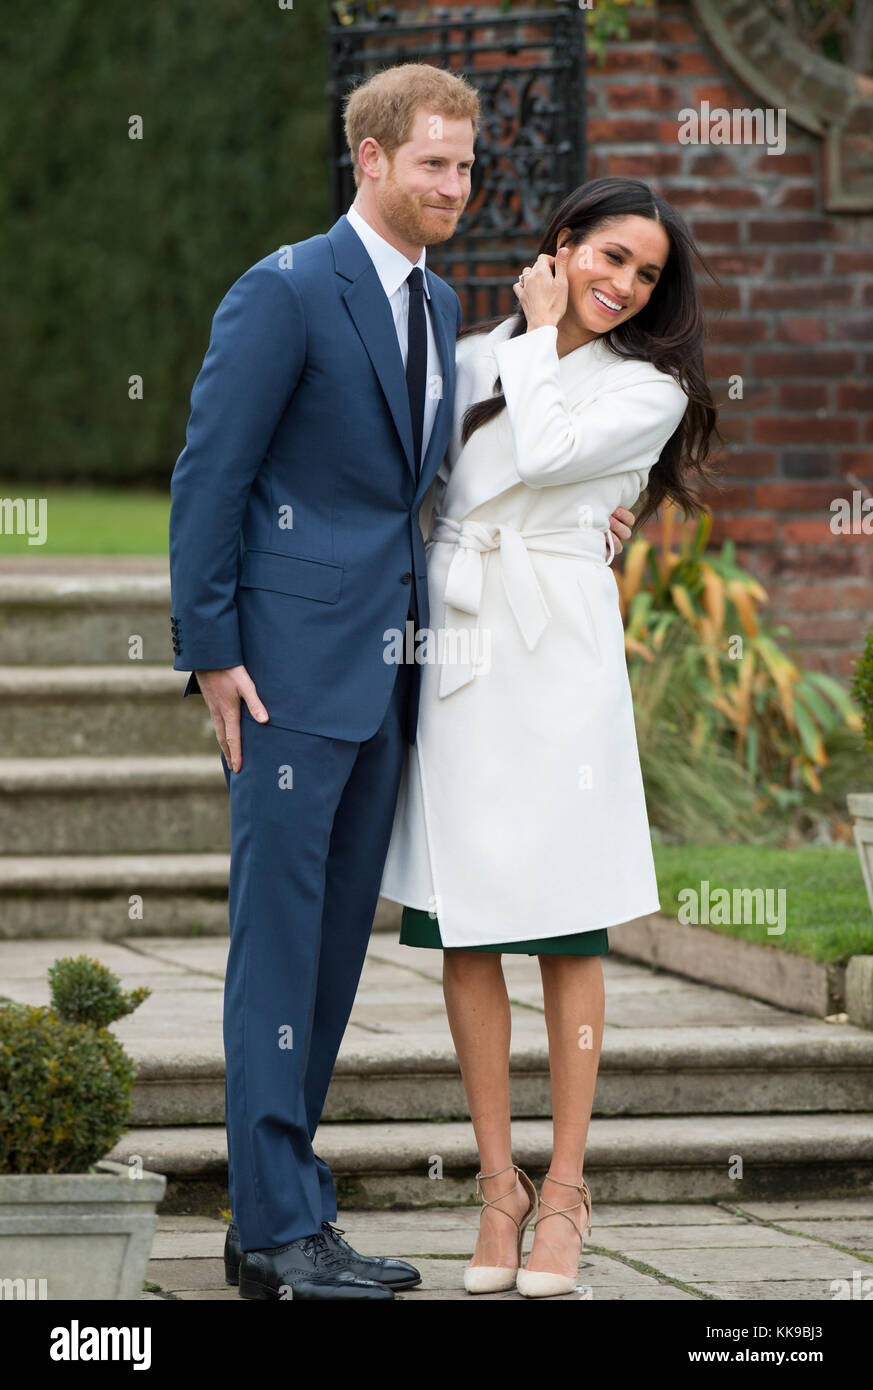 Kensington Palace announce the engagement of Prince Harry Wales to U.S. Actress Meghan Markle in the water garden - Stock Image